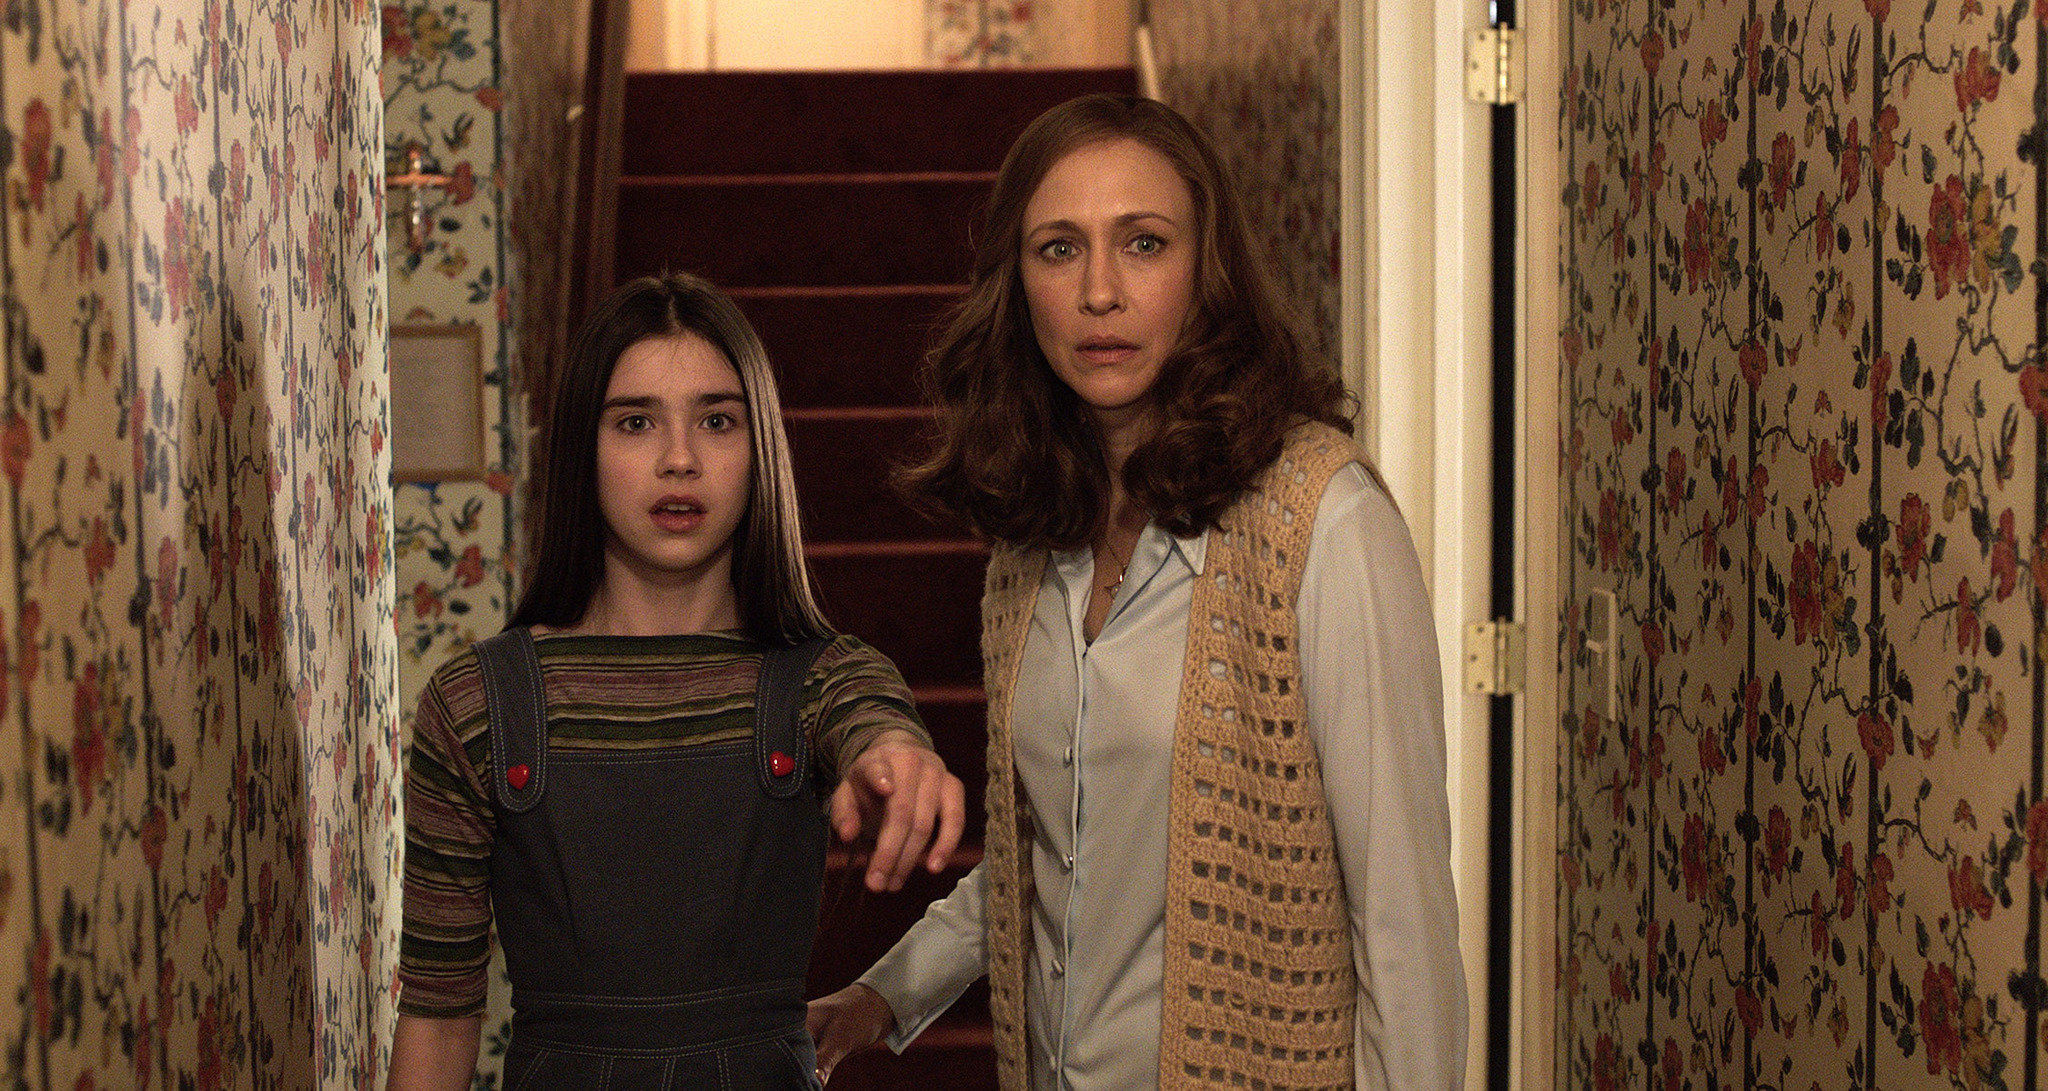 Vera Farmiga and Sterling Jerins in The Conjuring 2 (2016)